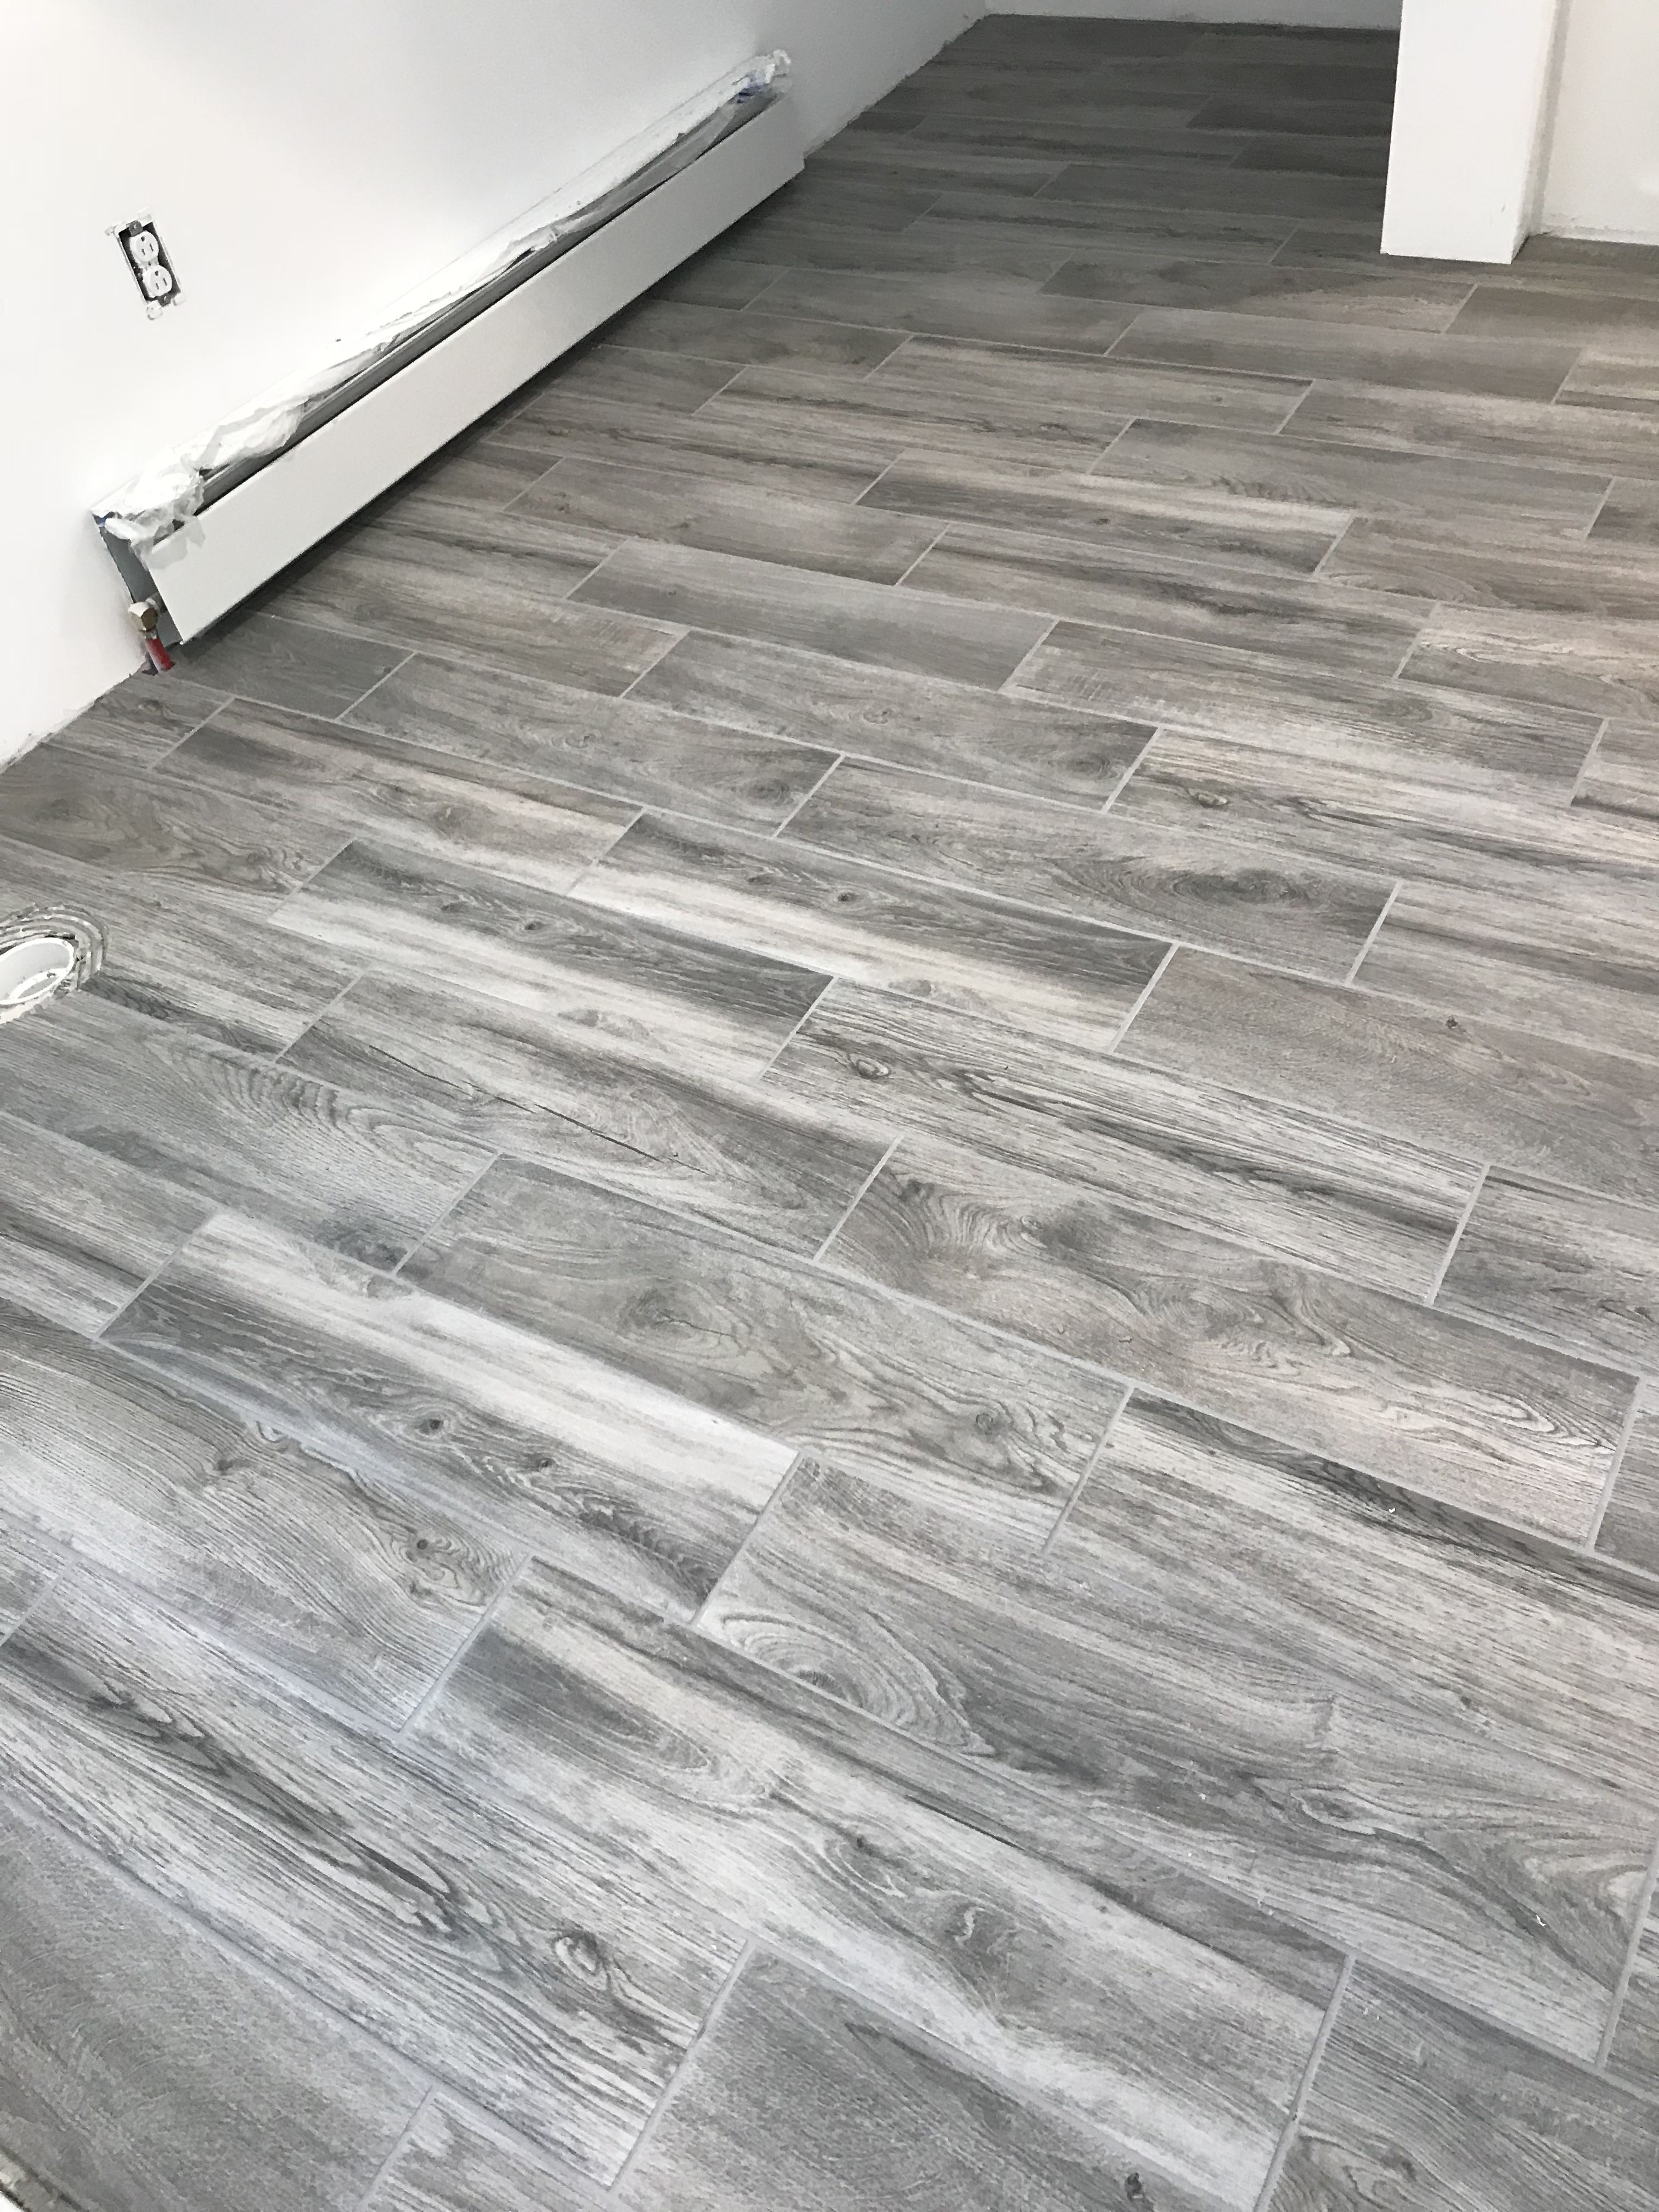 Lifeproof Shadow Wood 6 In X 24 In Porcelain Floor And Wall Tile